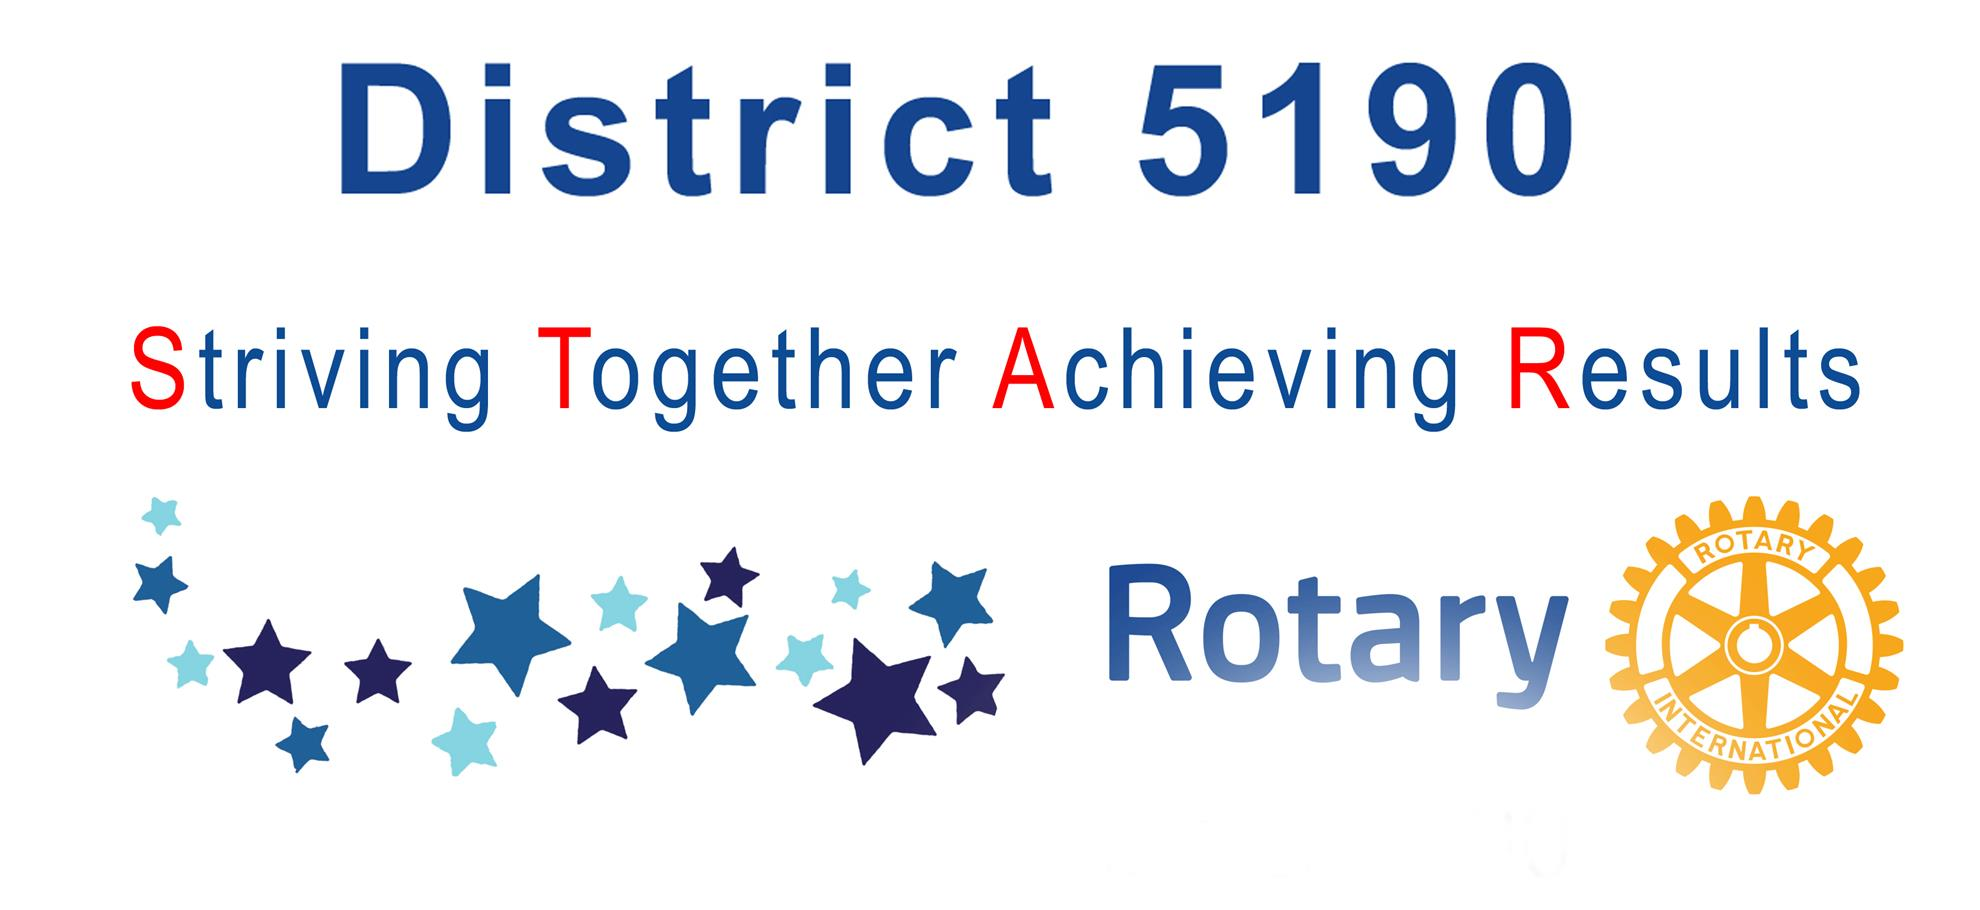 Striving Together Achieving Results